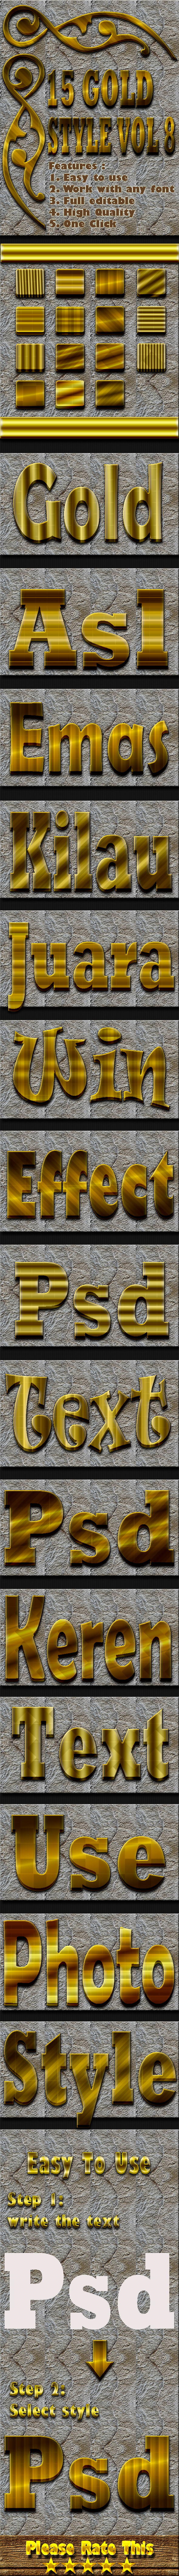 15 Gold Text Effect Style Vol 8 - Styles Photoshop